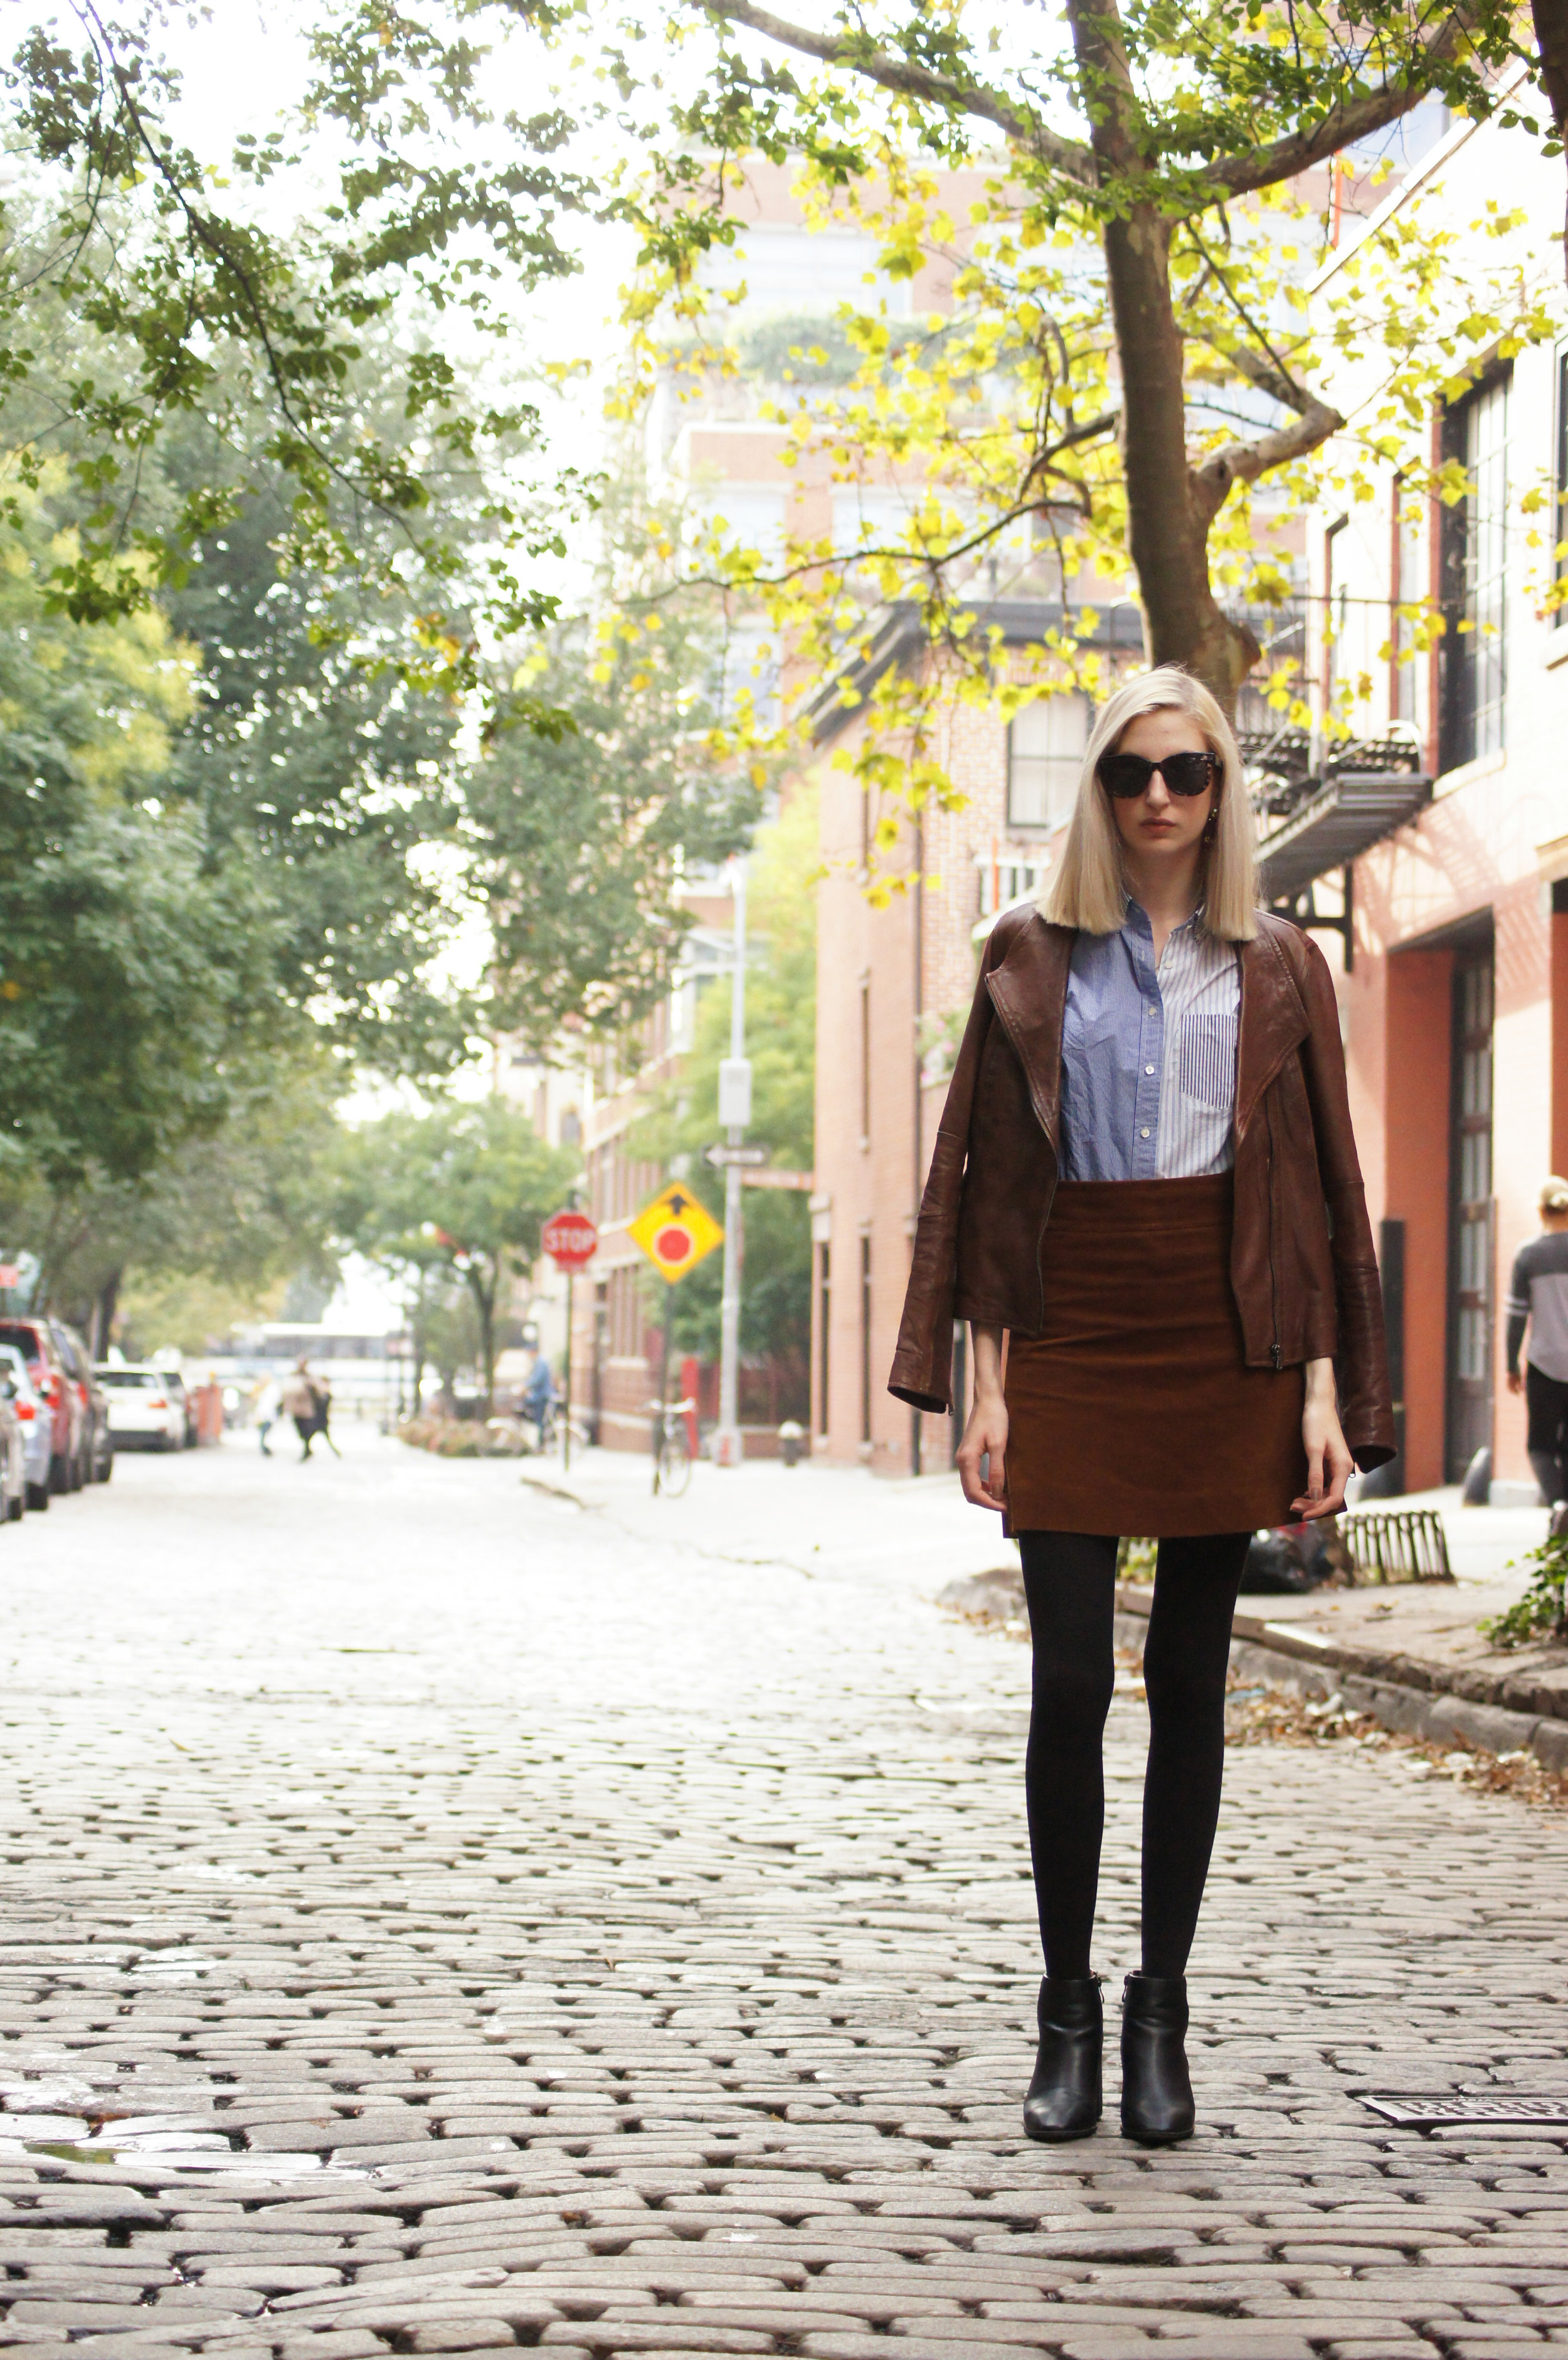 J.Crew corduroy skirt, cocktail shirt, and crystal fan earrings, block heel black ankle boots, brown leather jacket - Audra Koch